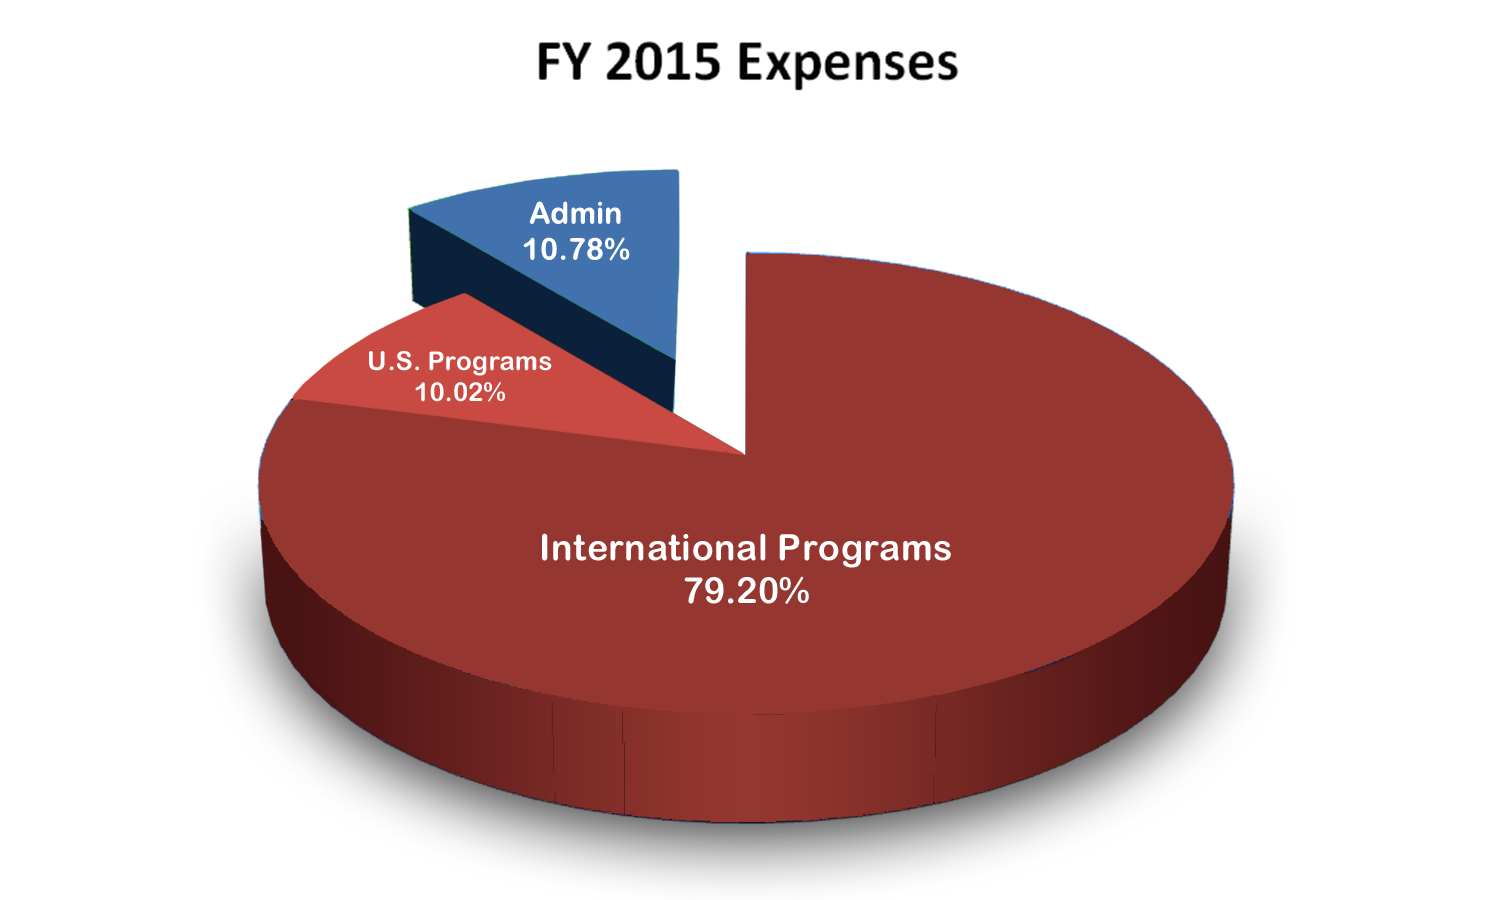 More than 89% of HIM's total expenditures were directed toward International and U.S. programs that help children and families in need.  Financial Statement audited by Swartz Retson & Co PC